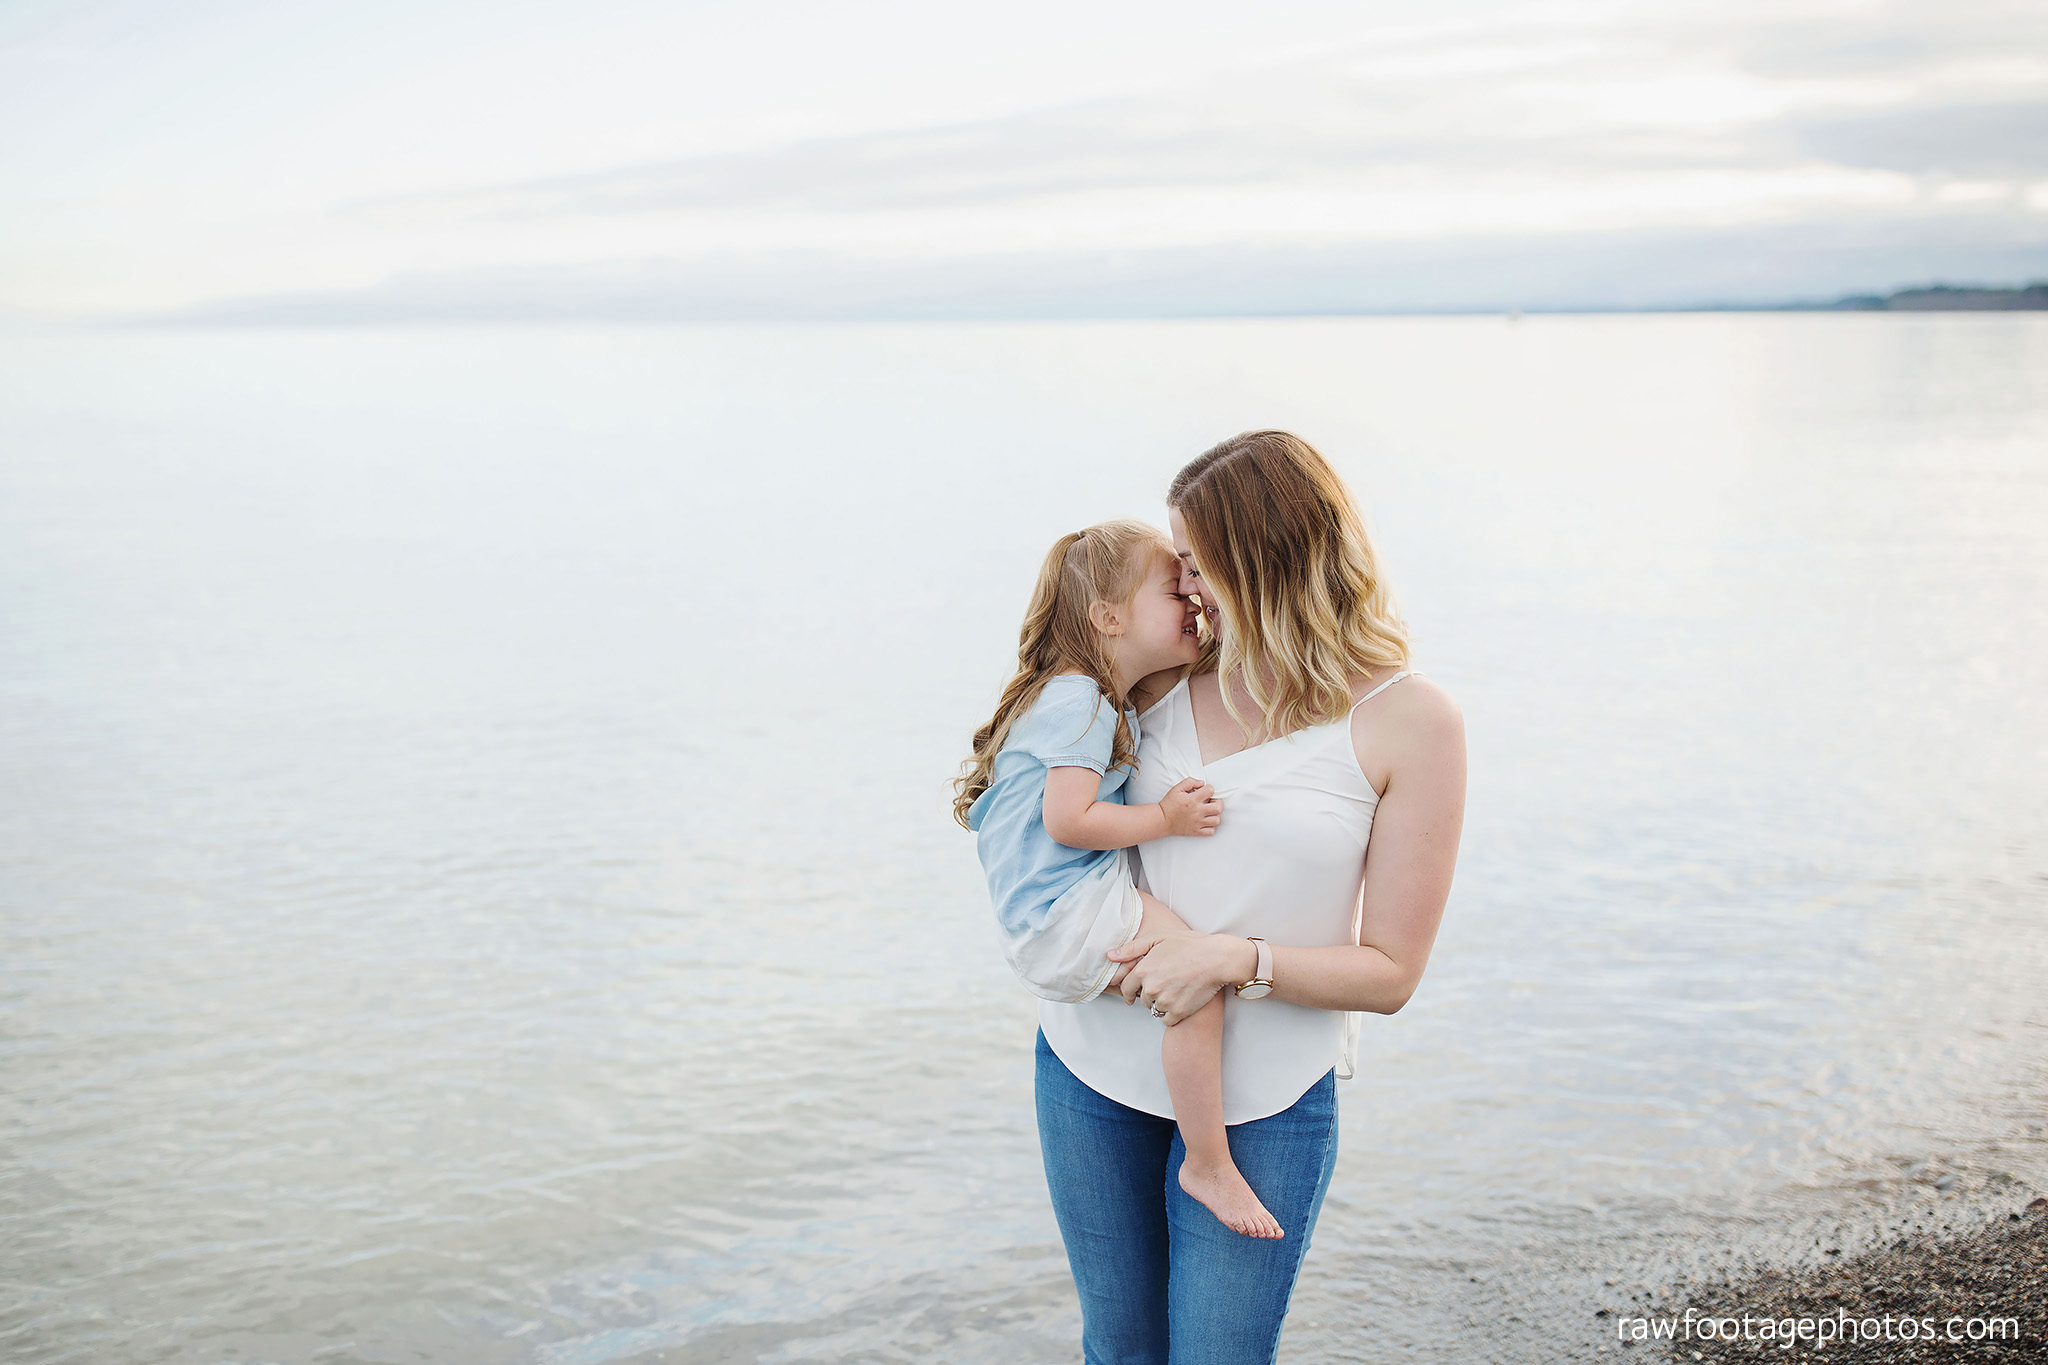 london_ontario_family_photographer-beach_minis-port_stanley_beach-raw_footage_photography010.jpg